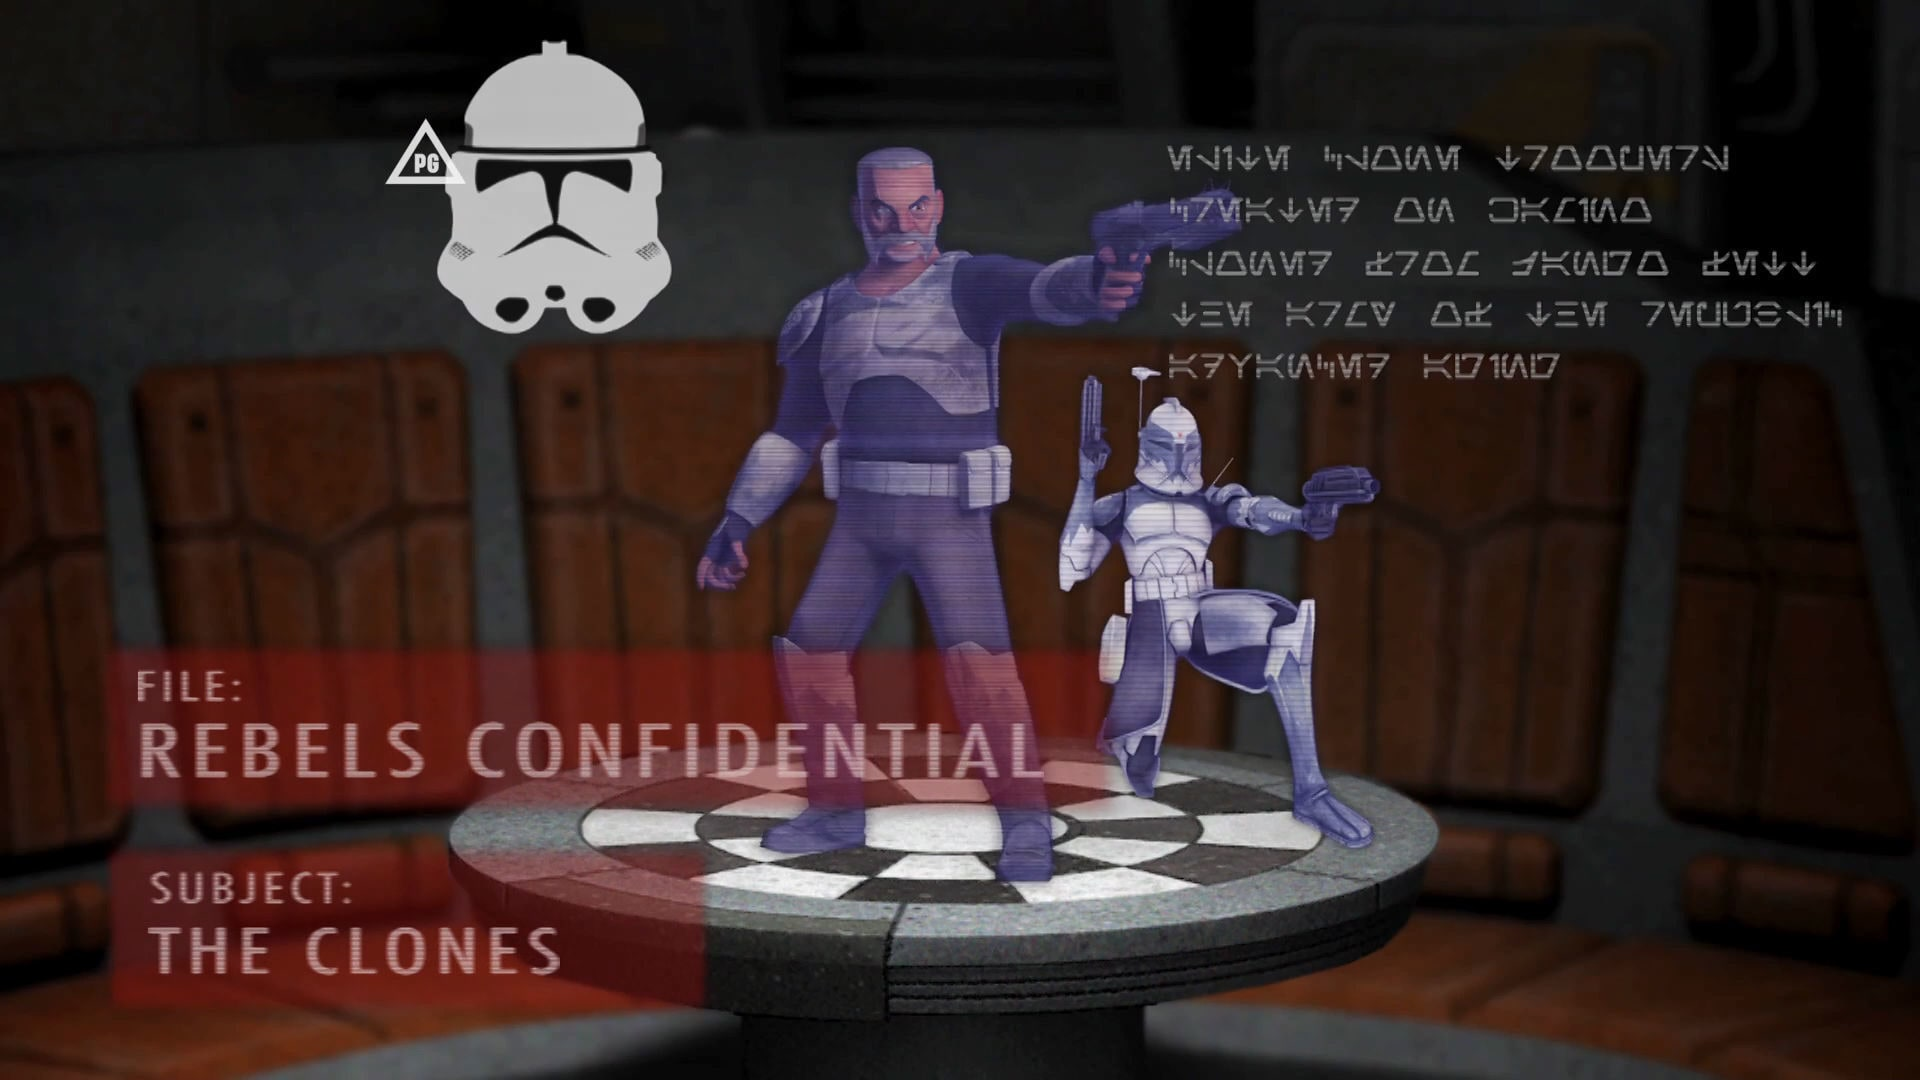 Rebels Confidential: The Clones